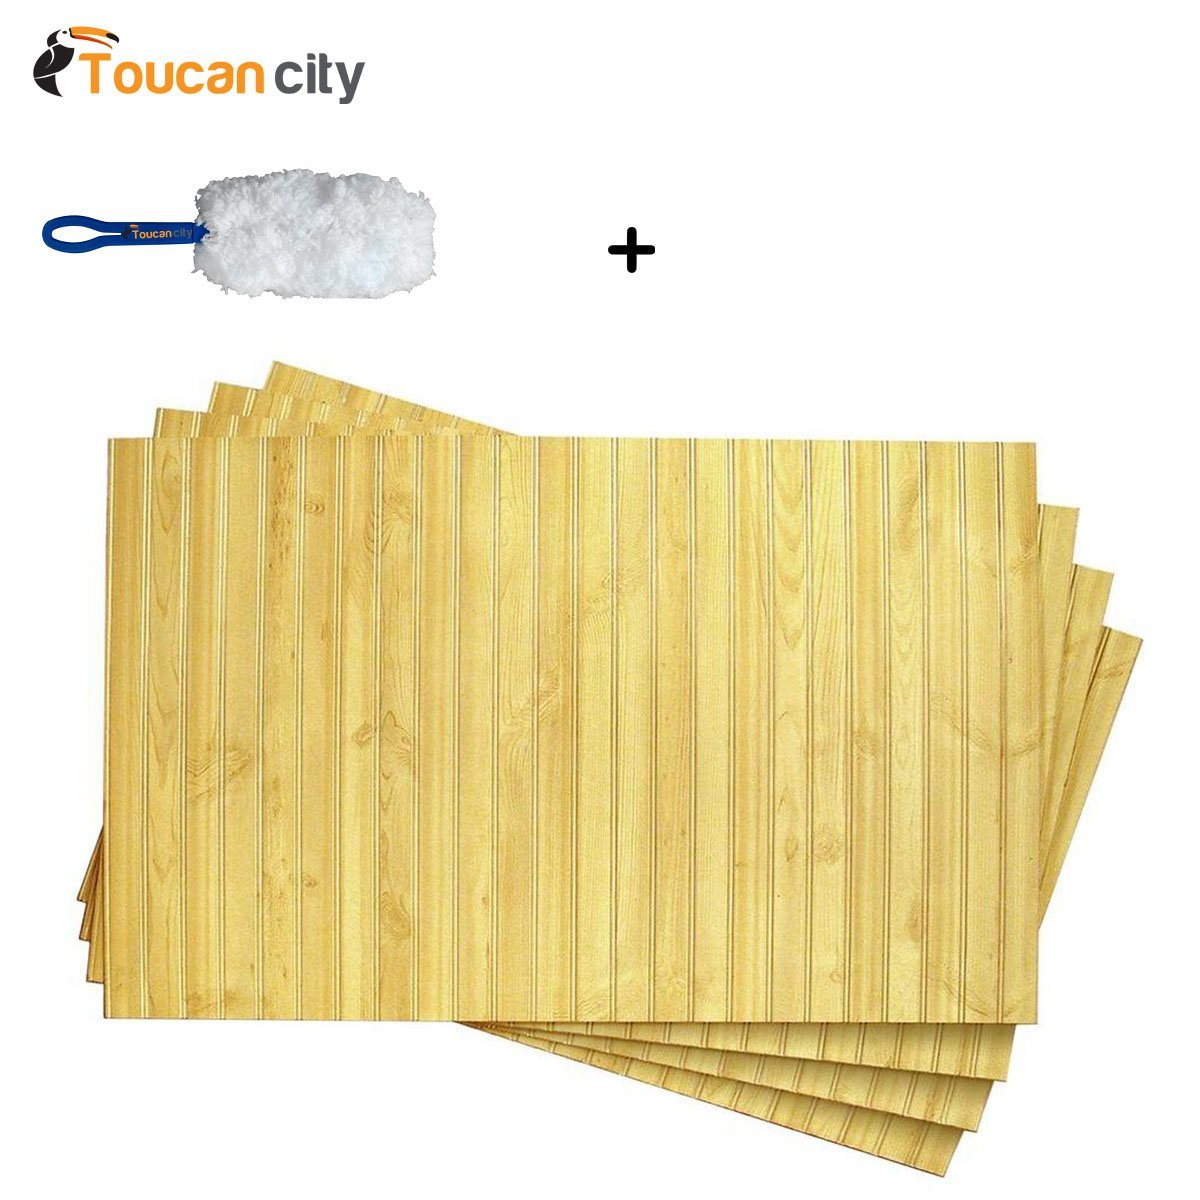 Toucan City Microfiber Dash Duster and 1/4 in. x 32 in. x 48 in. DPI Goldendale Wainscot Panel (4-Pack) HD18532484